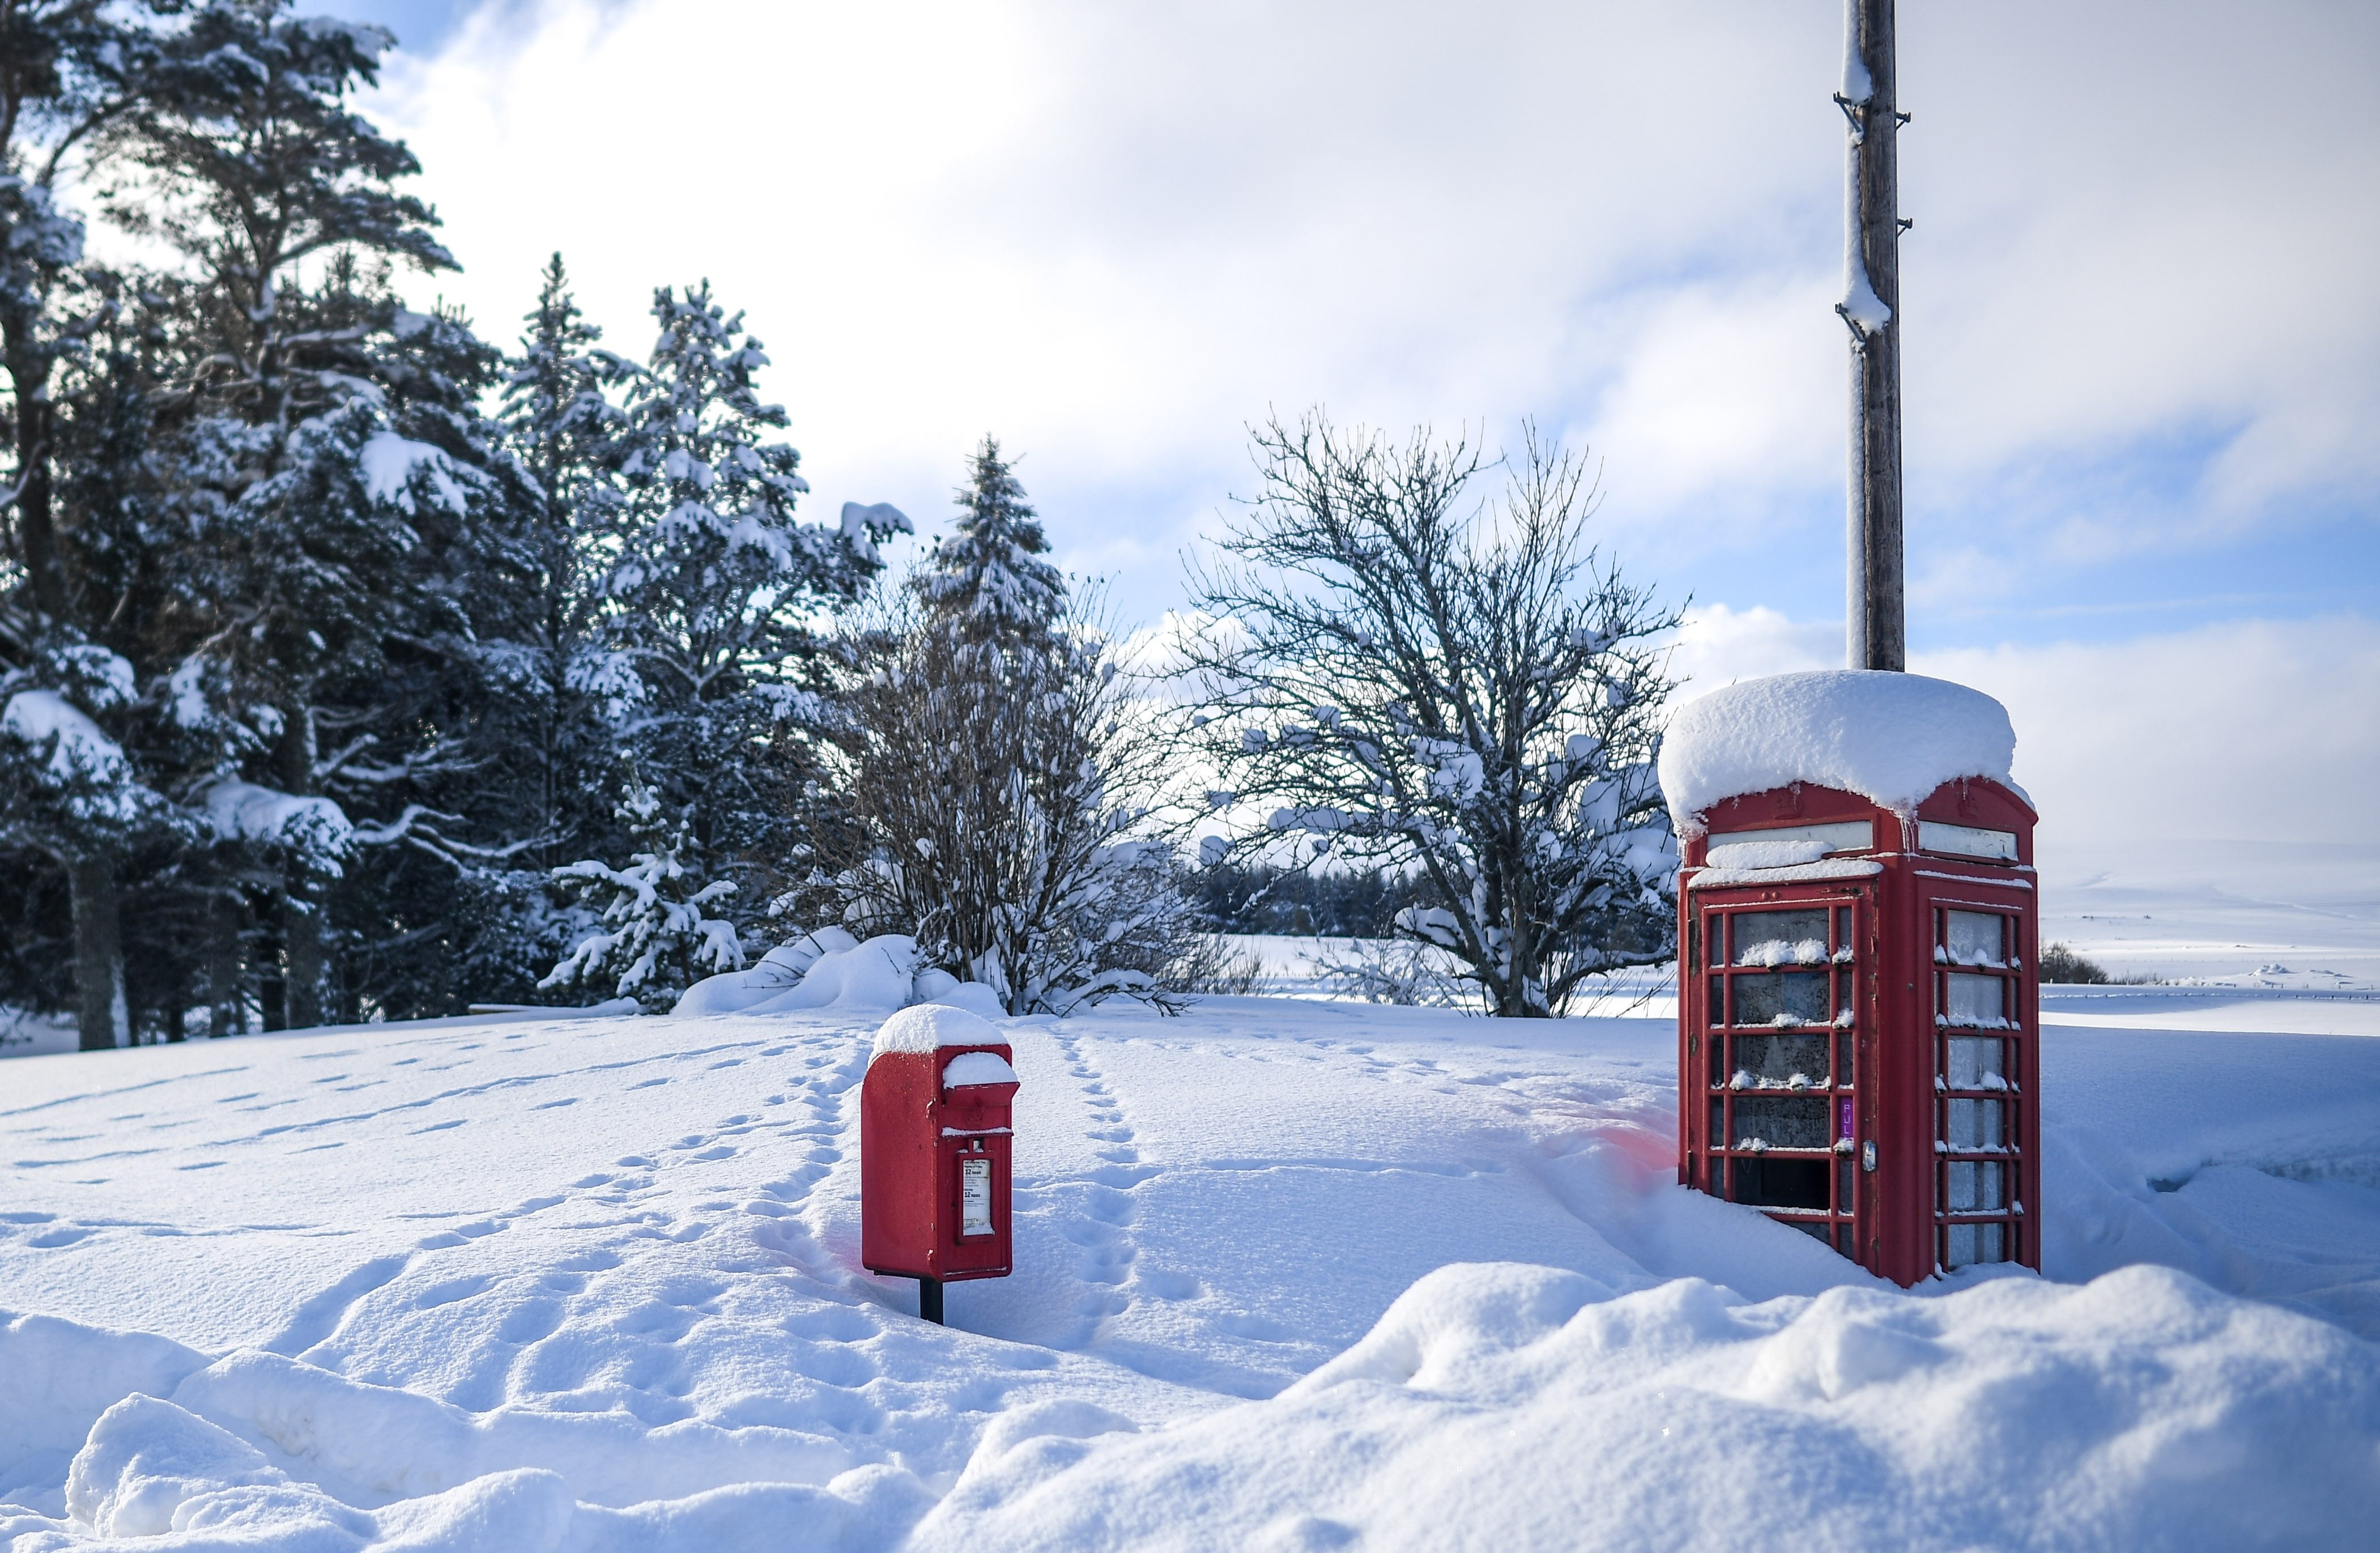 Snow in Scotland today